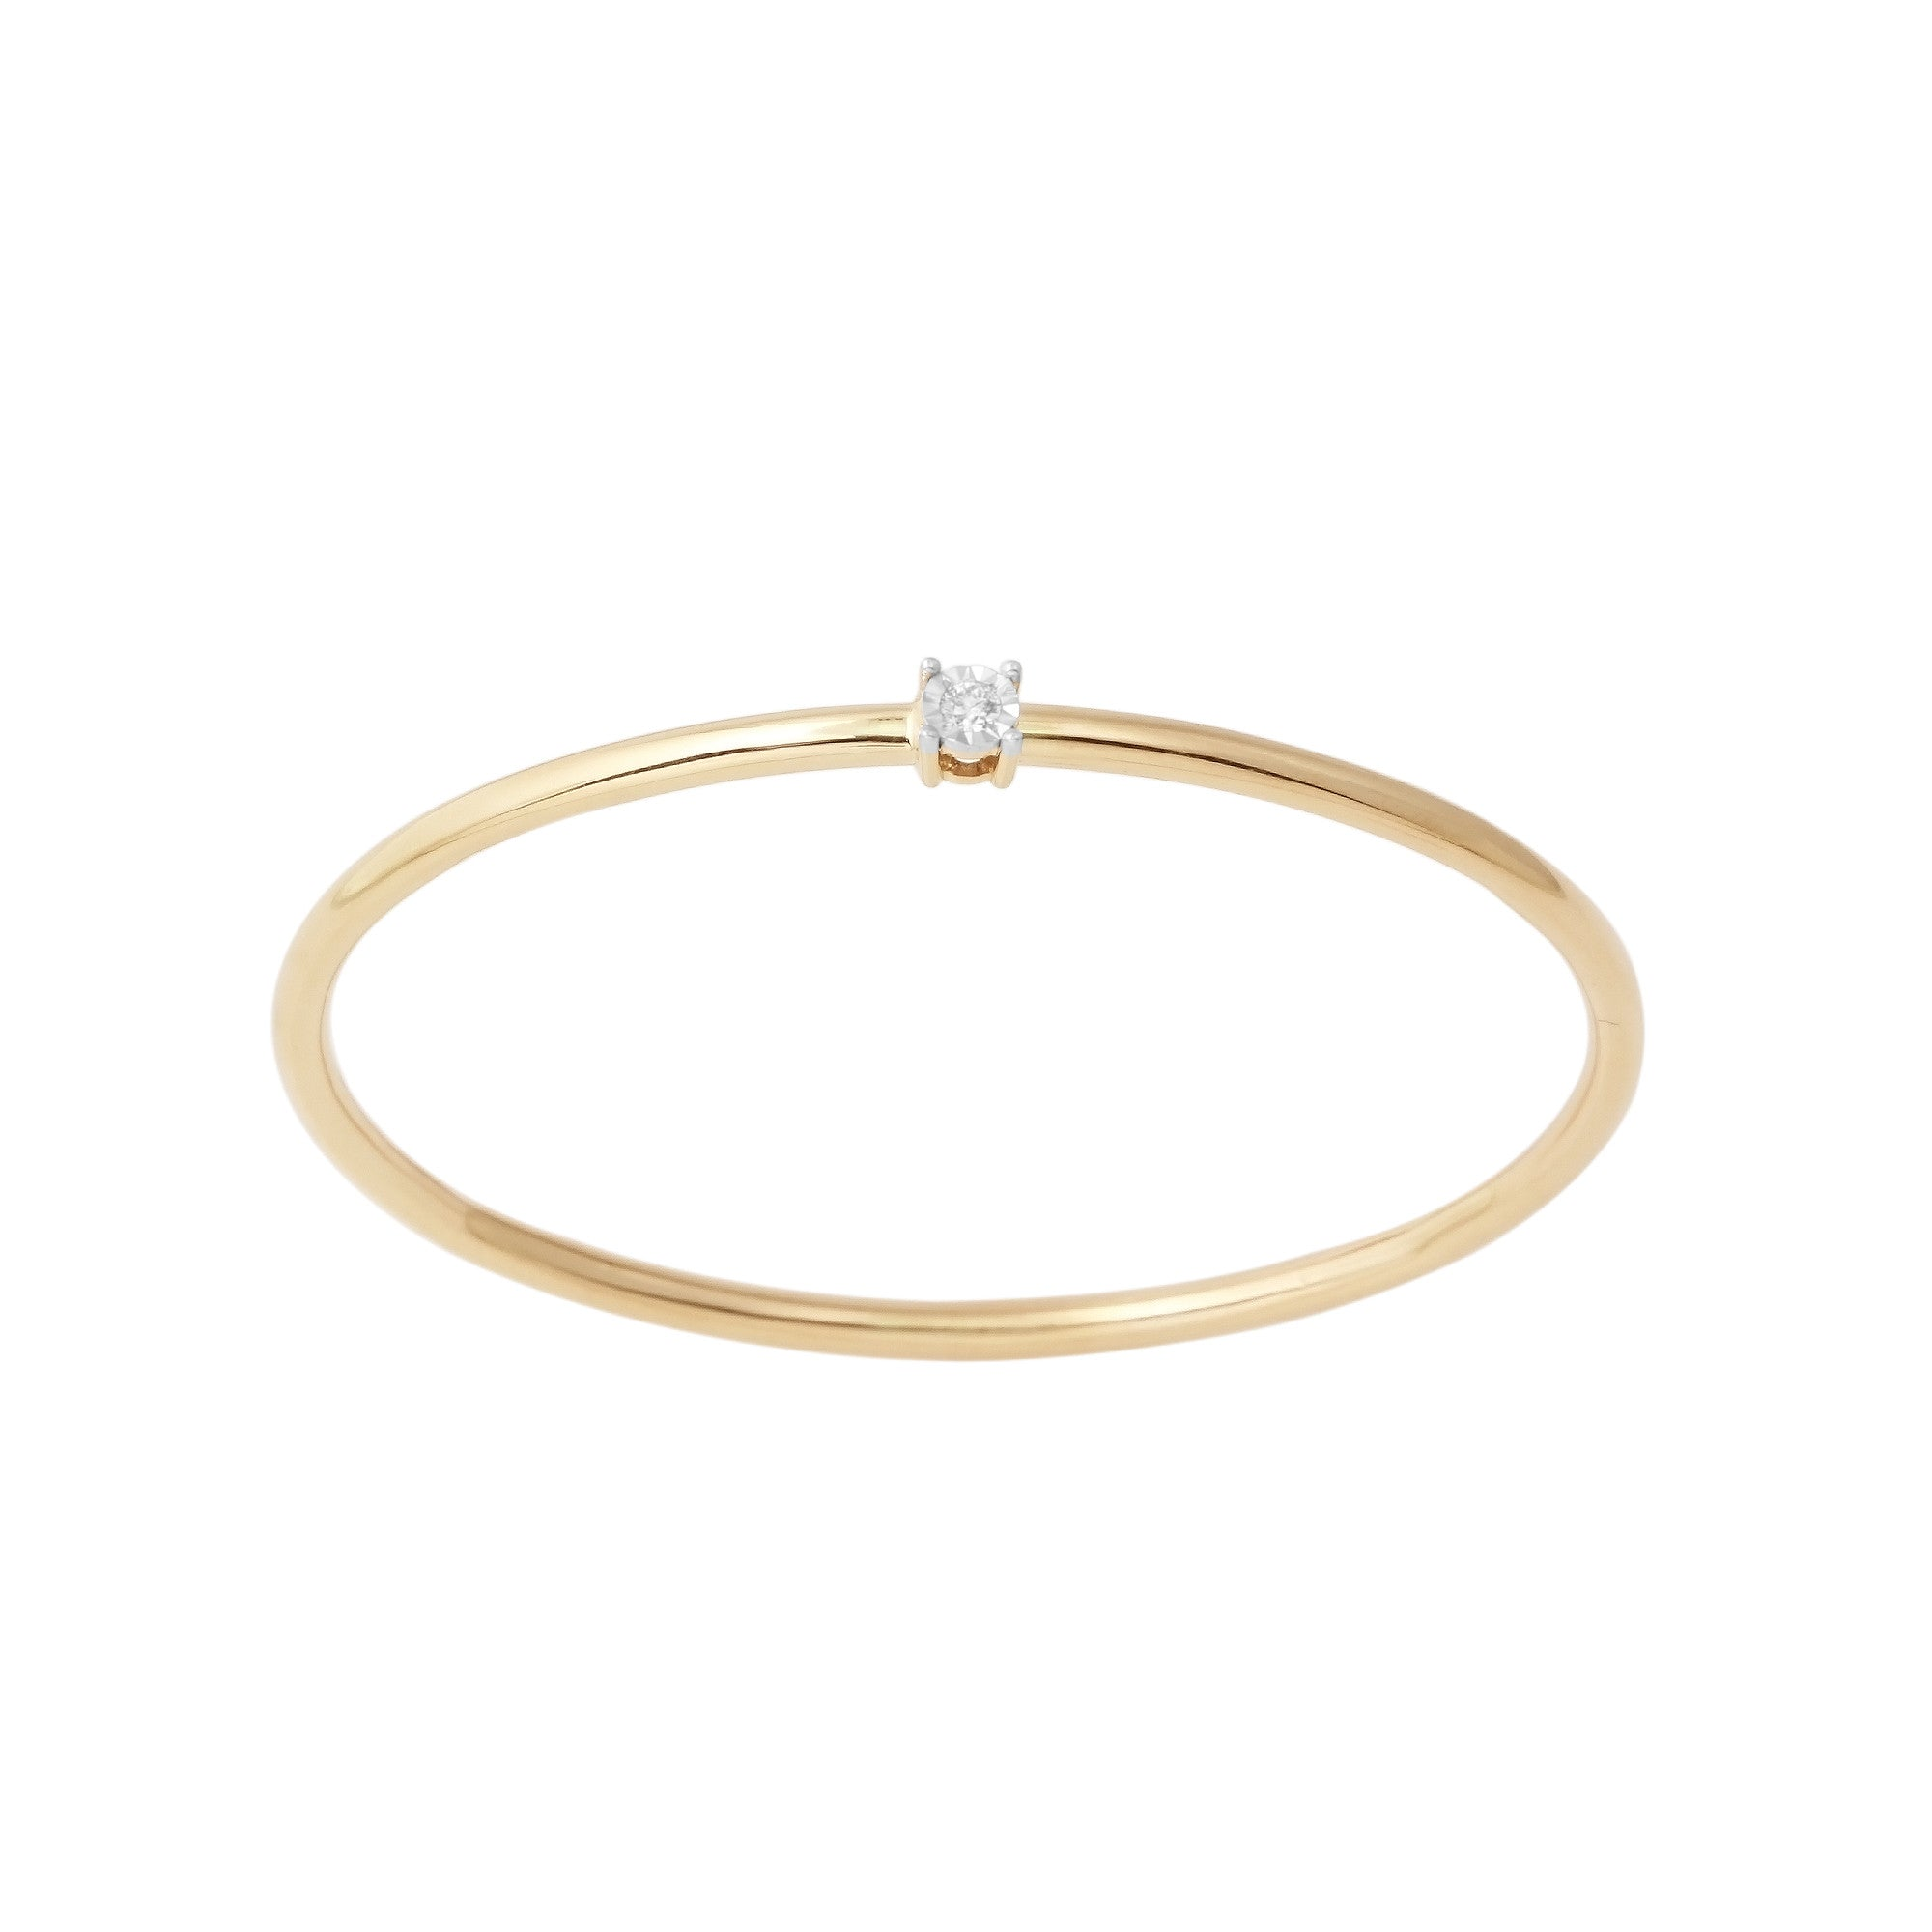 stones with diamond bangle bracelets bangles gold platinum